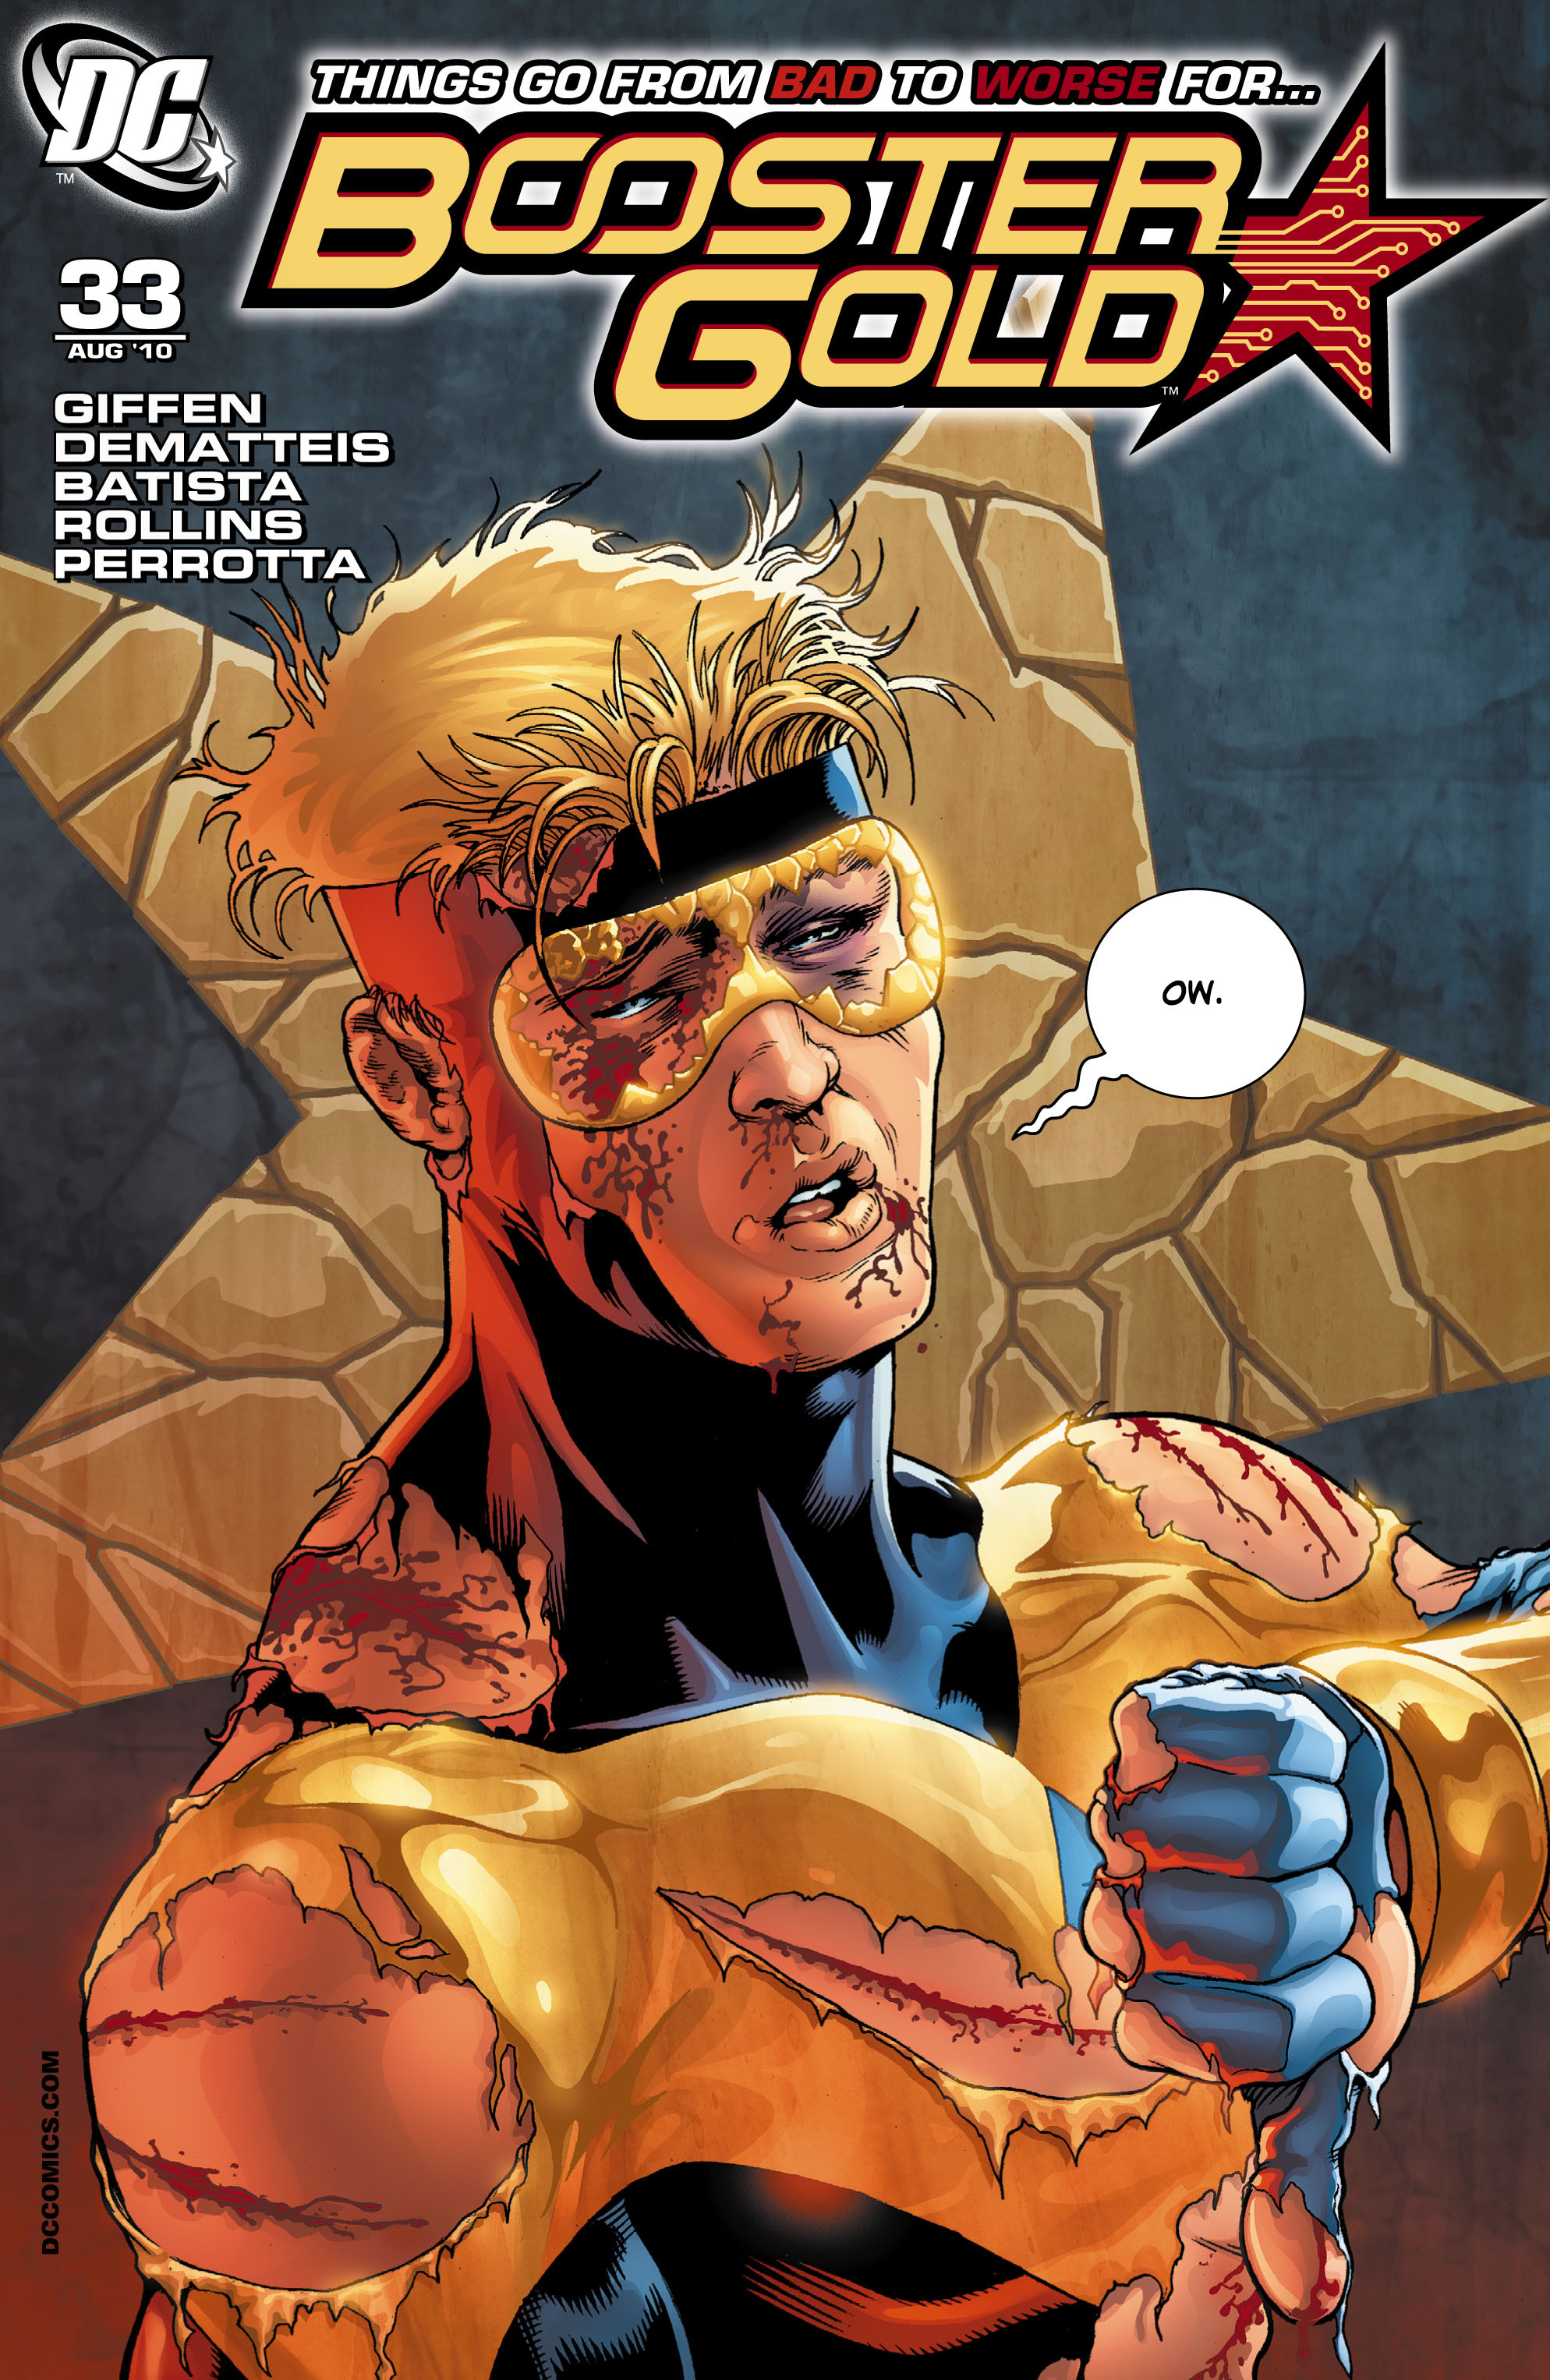 Booster Gold 2007 Issue 33